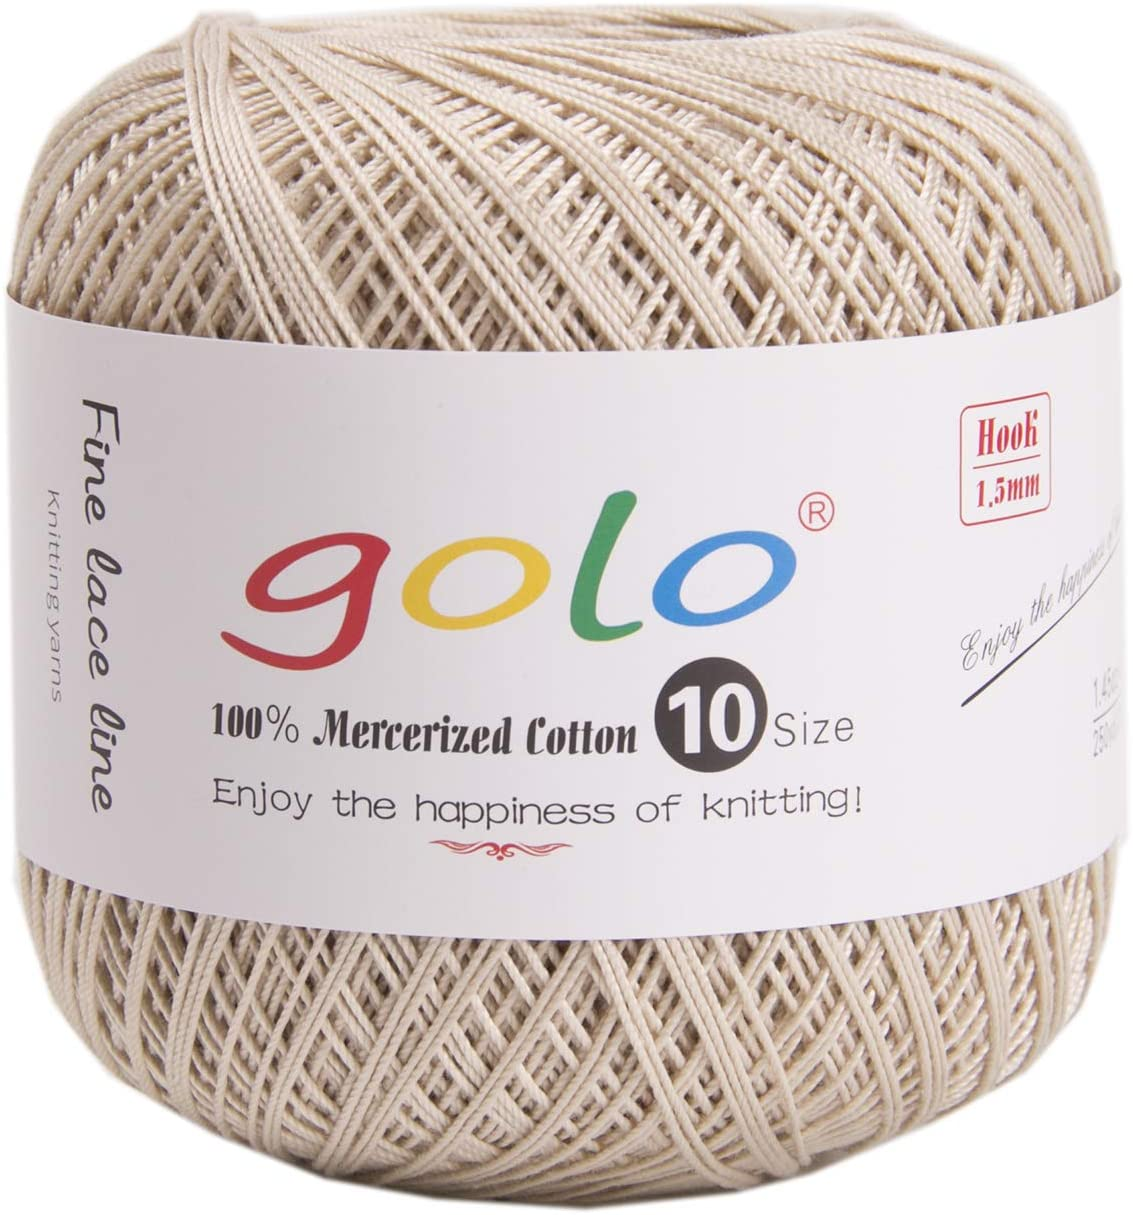 golo Crochet Thread for Begingers Size 10 Coffee Color Yarn